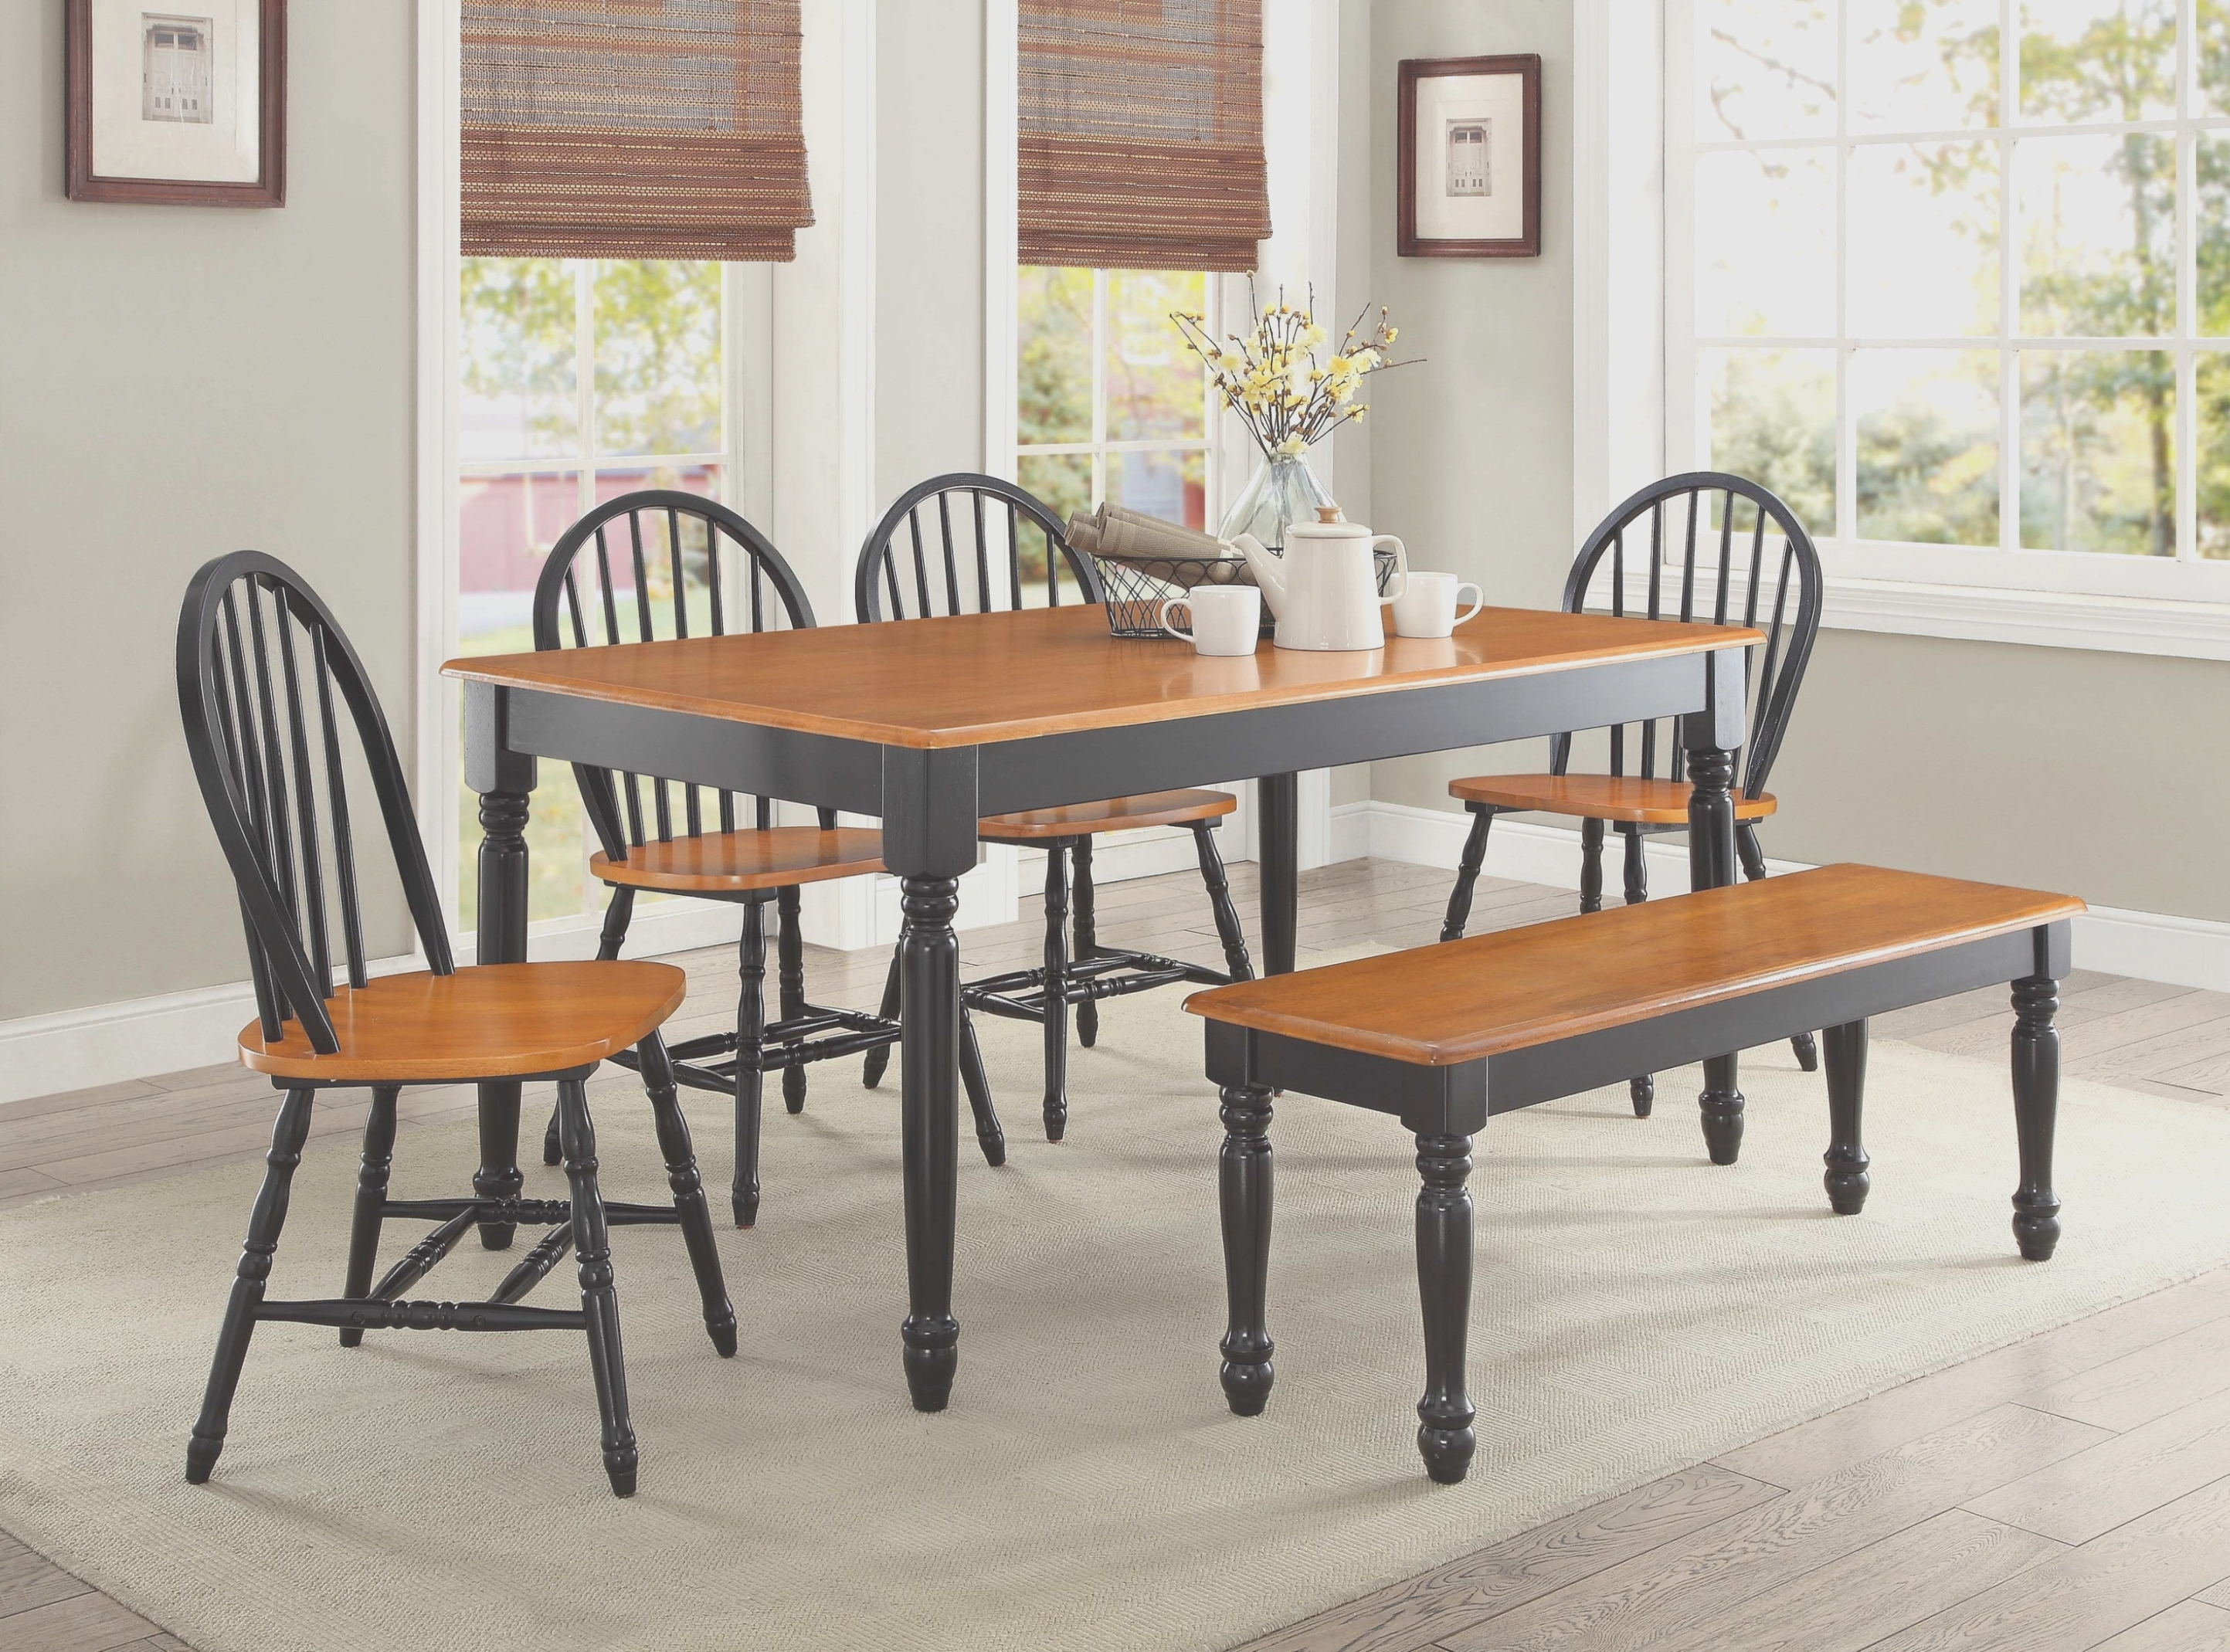 Well Liked Cheap Dining Room Chairs In Dining: Walmart Dining Table Set Within Walmart Small Dining Table (View 25 of 25)